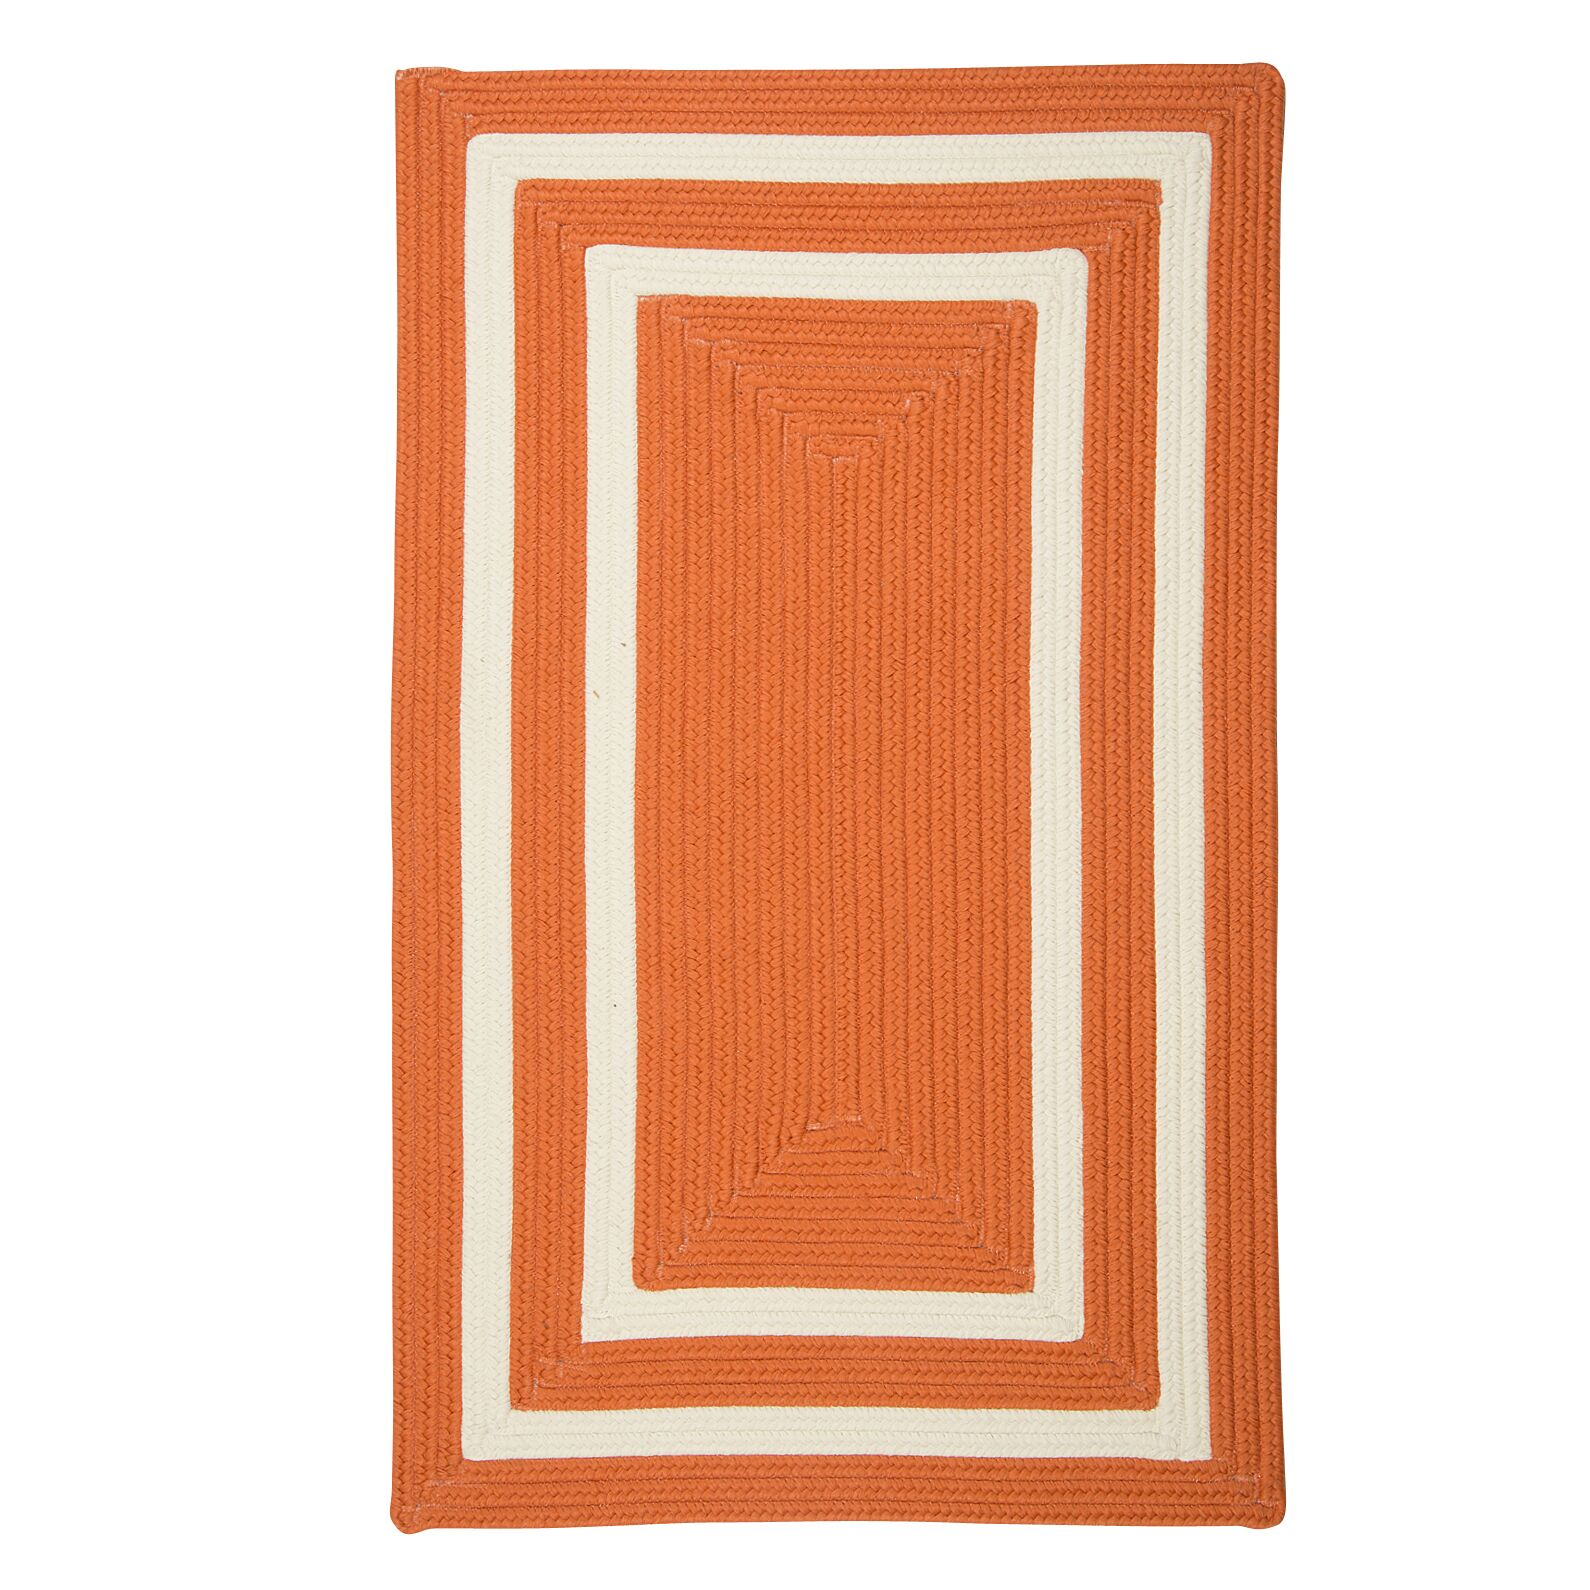 Marti Hand-Woven Outdoor Orange Area Rug Rug Size: Rectangle 3' x 5'